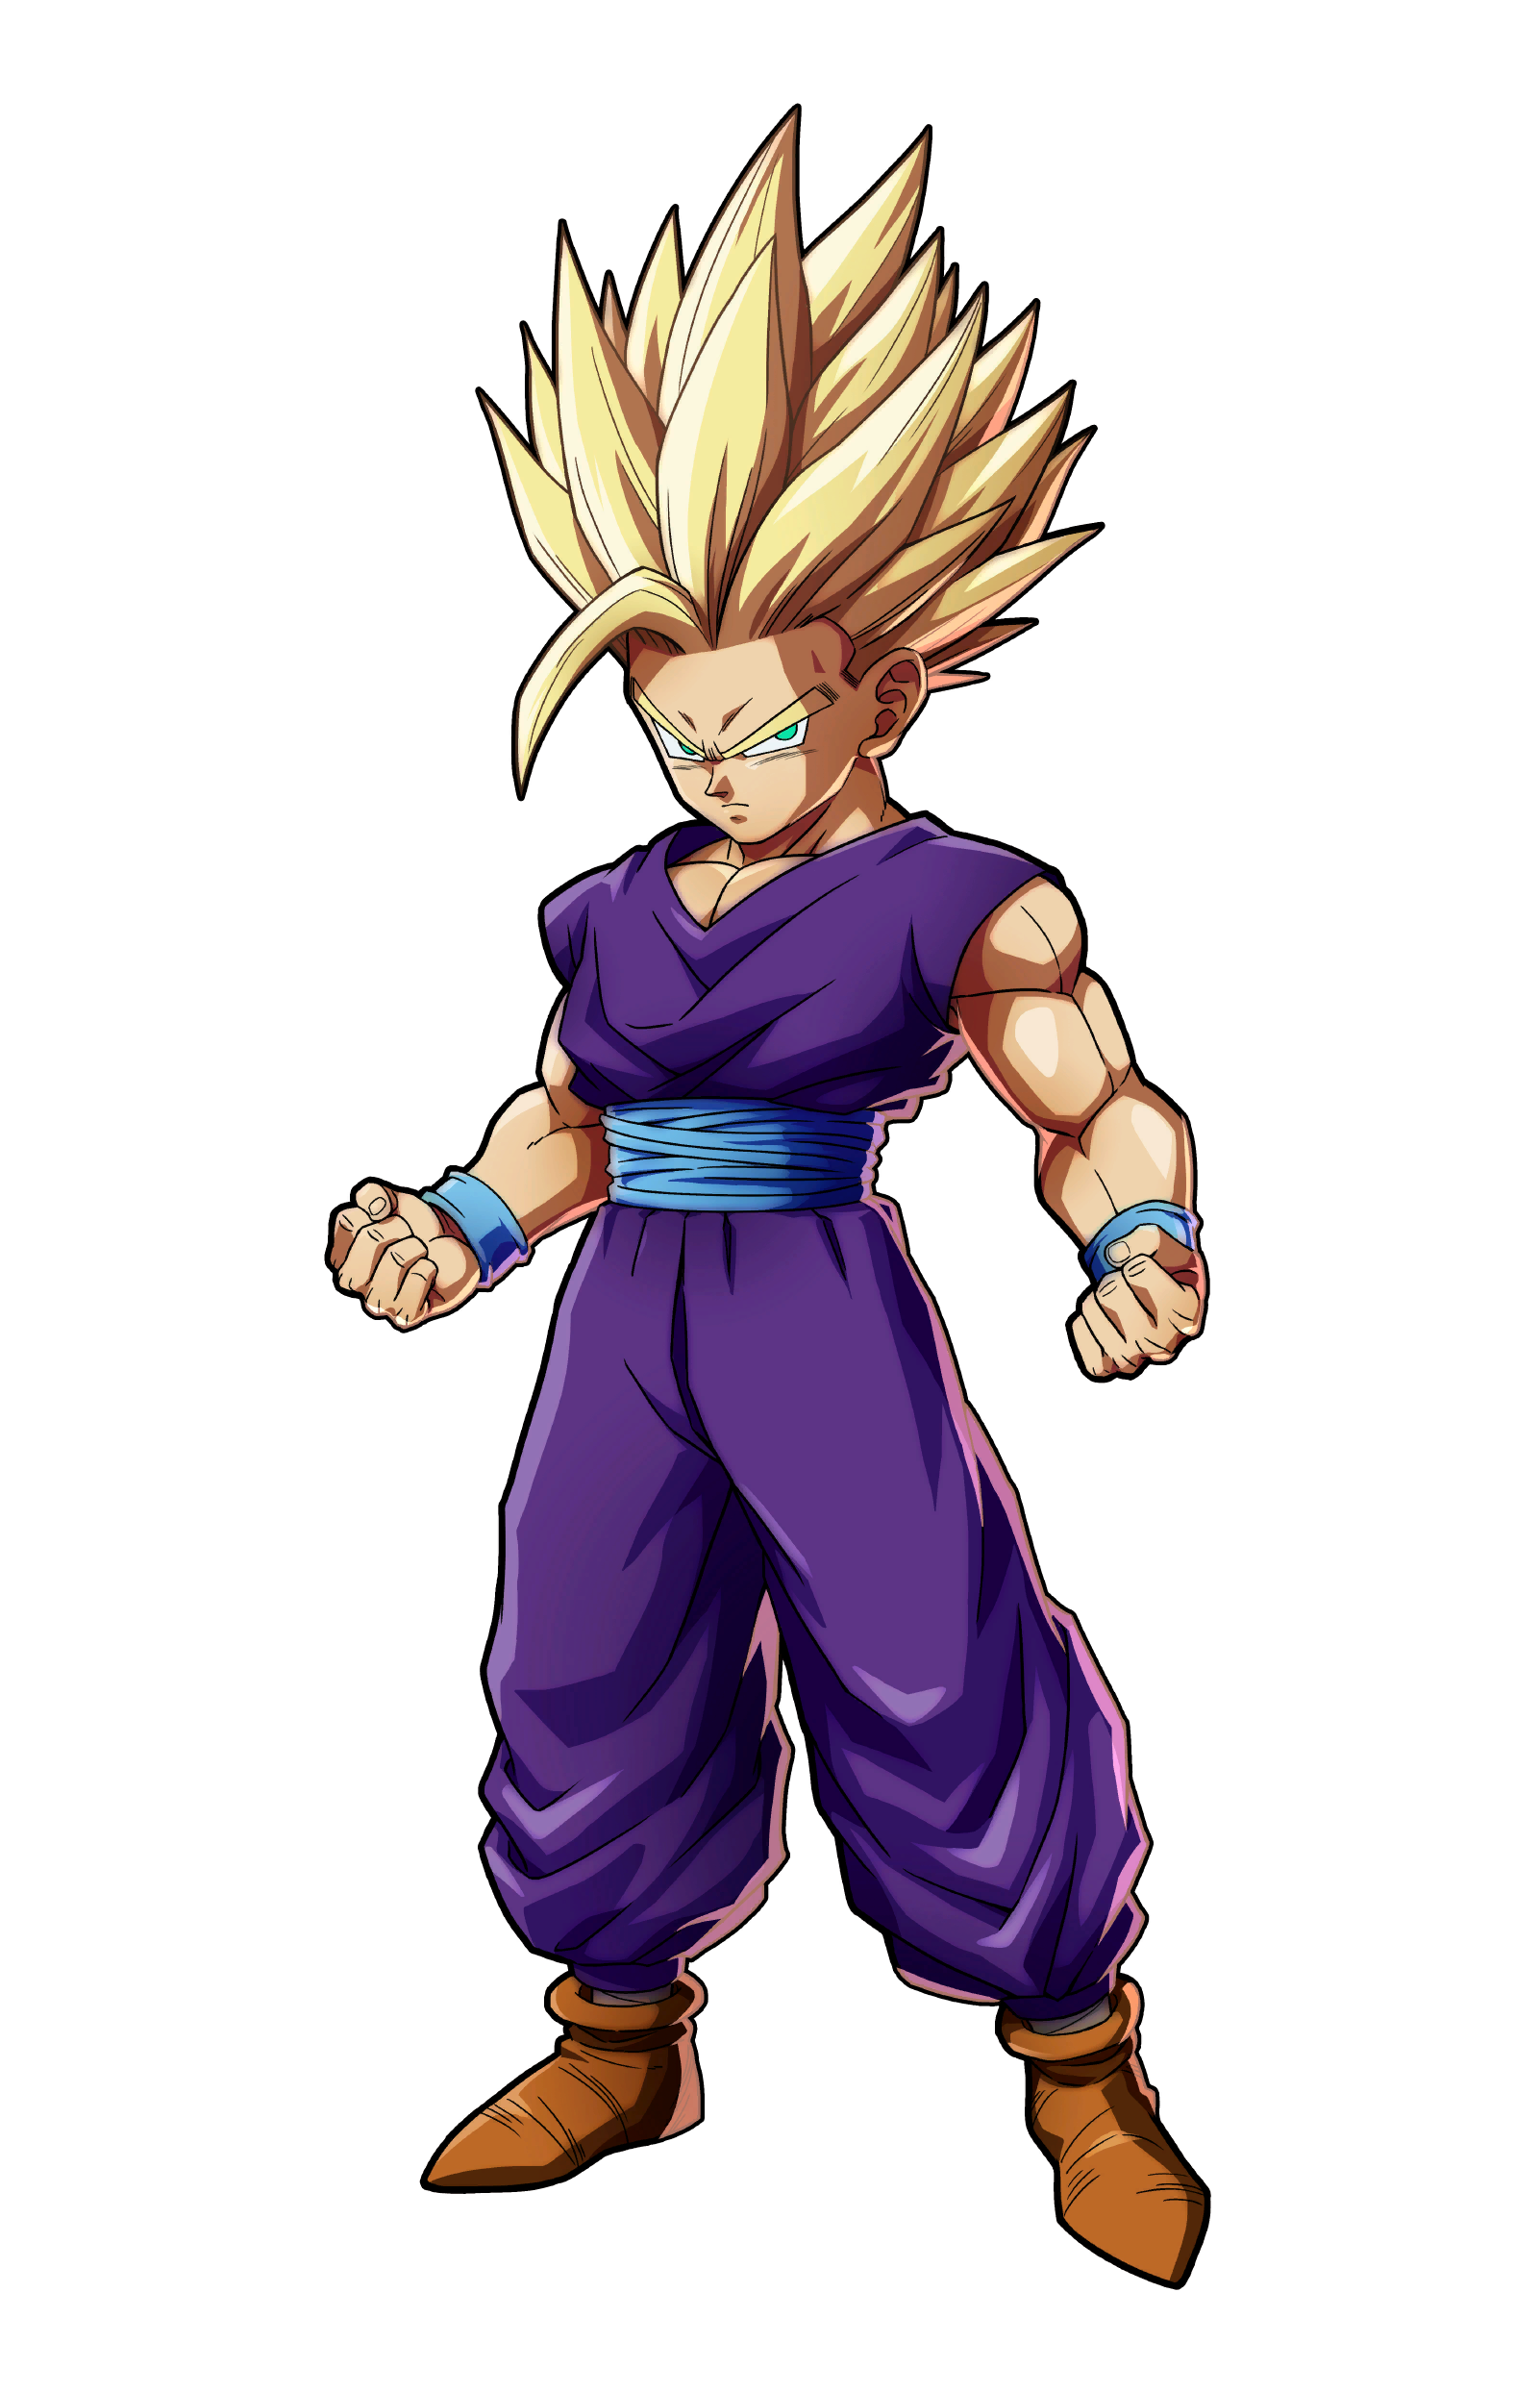 Teen Gohan Render Dragon Ball Fighterz Png Renders Aiktry Mix & match this shirt with other items to create an avatar that is unique to you! teen gohan render dragon ball fighterz